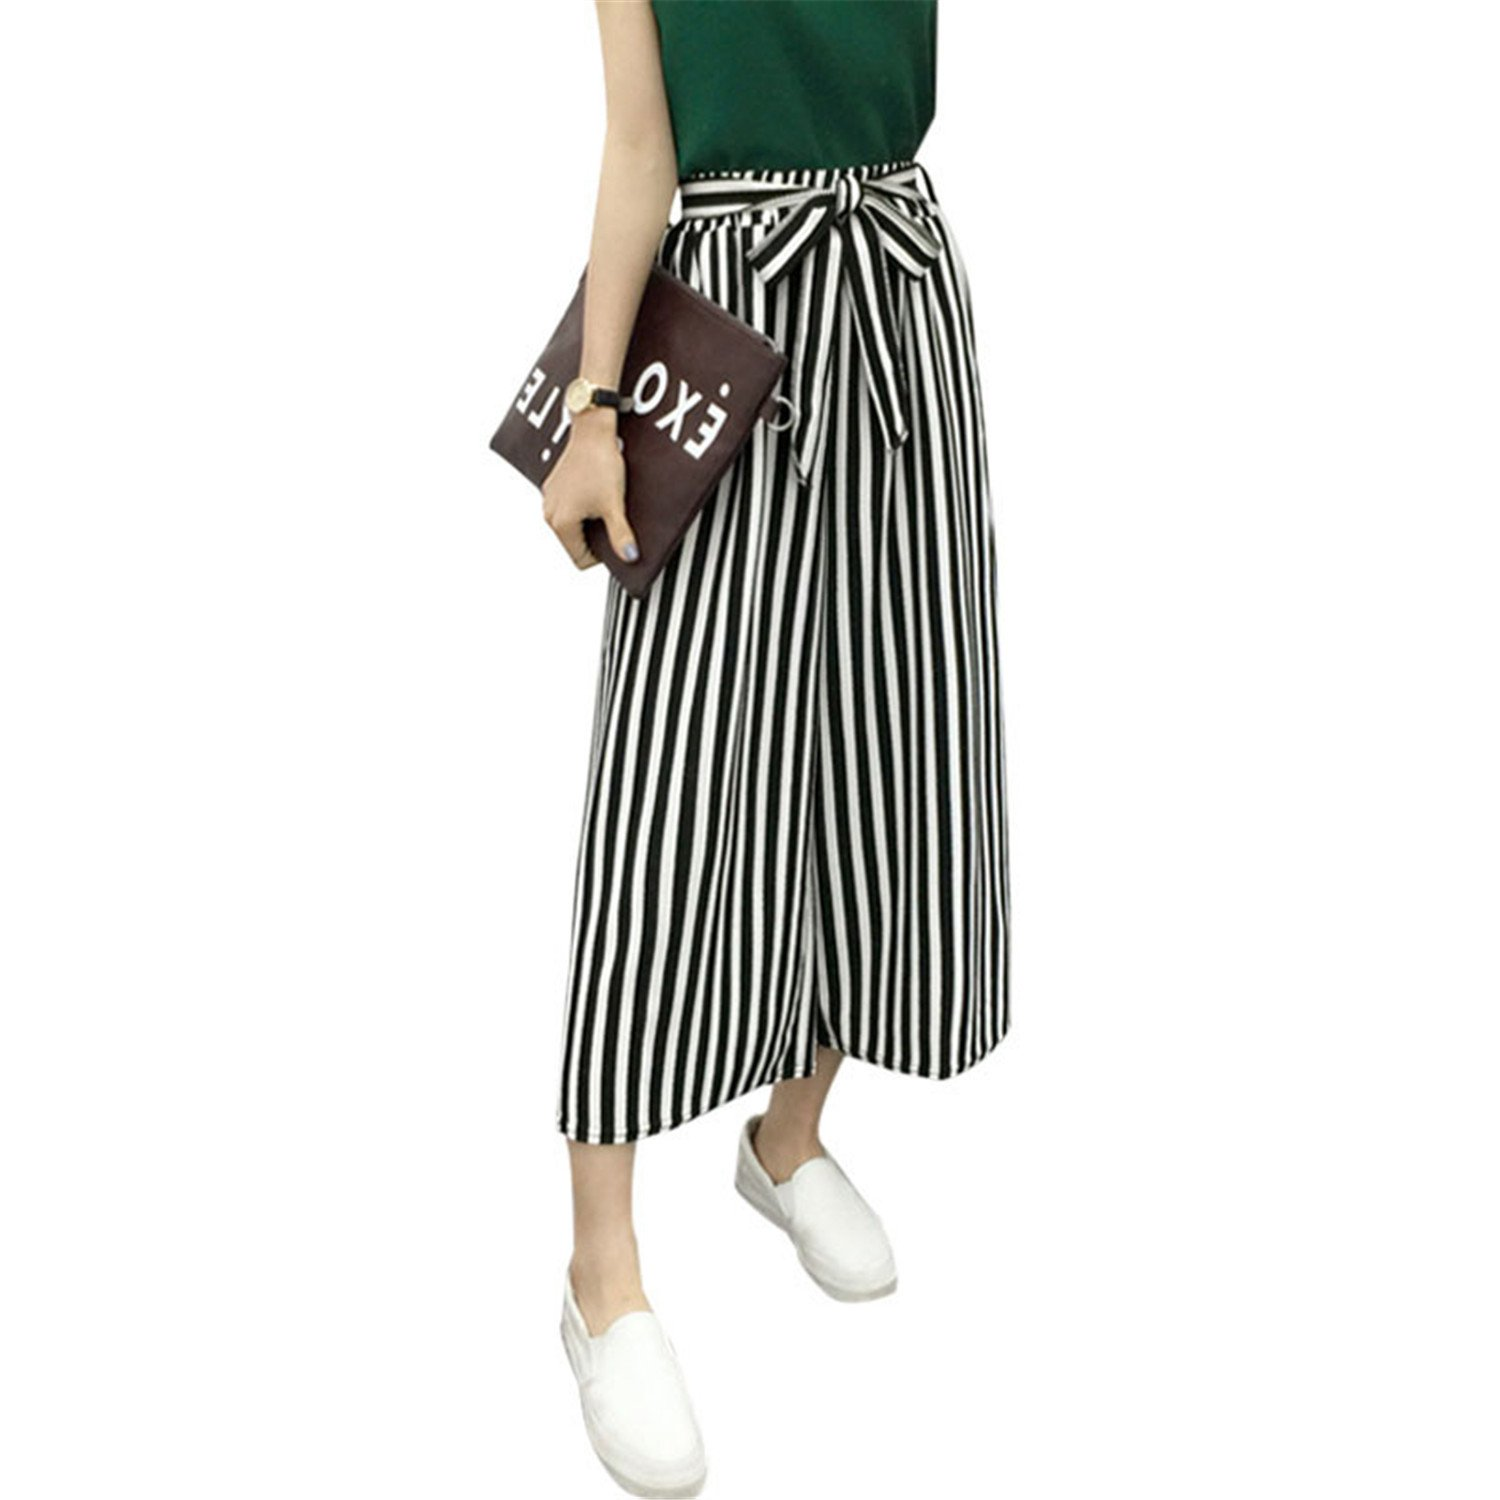 Fashion Summer Hot Selling Ladies Office Trousers Loose Wide Leg Pants Woman High Waist OL Casual Office Pants for Women Fine Black Bars M by Rainlife pants (Image #3)